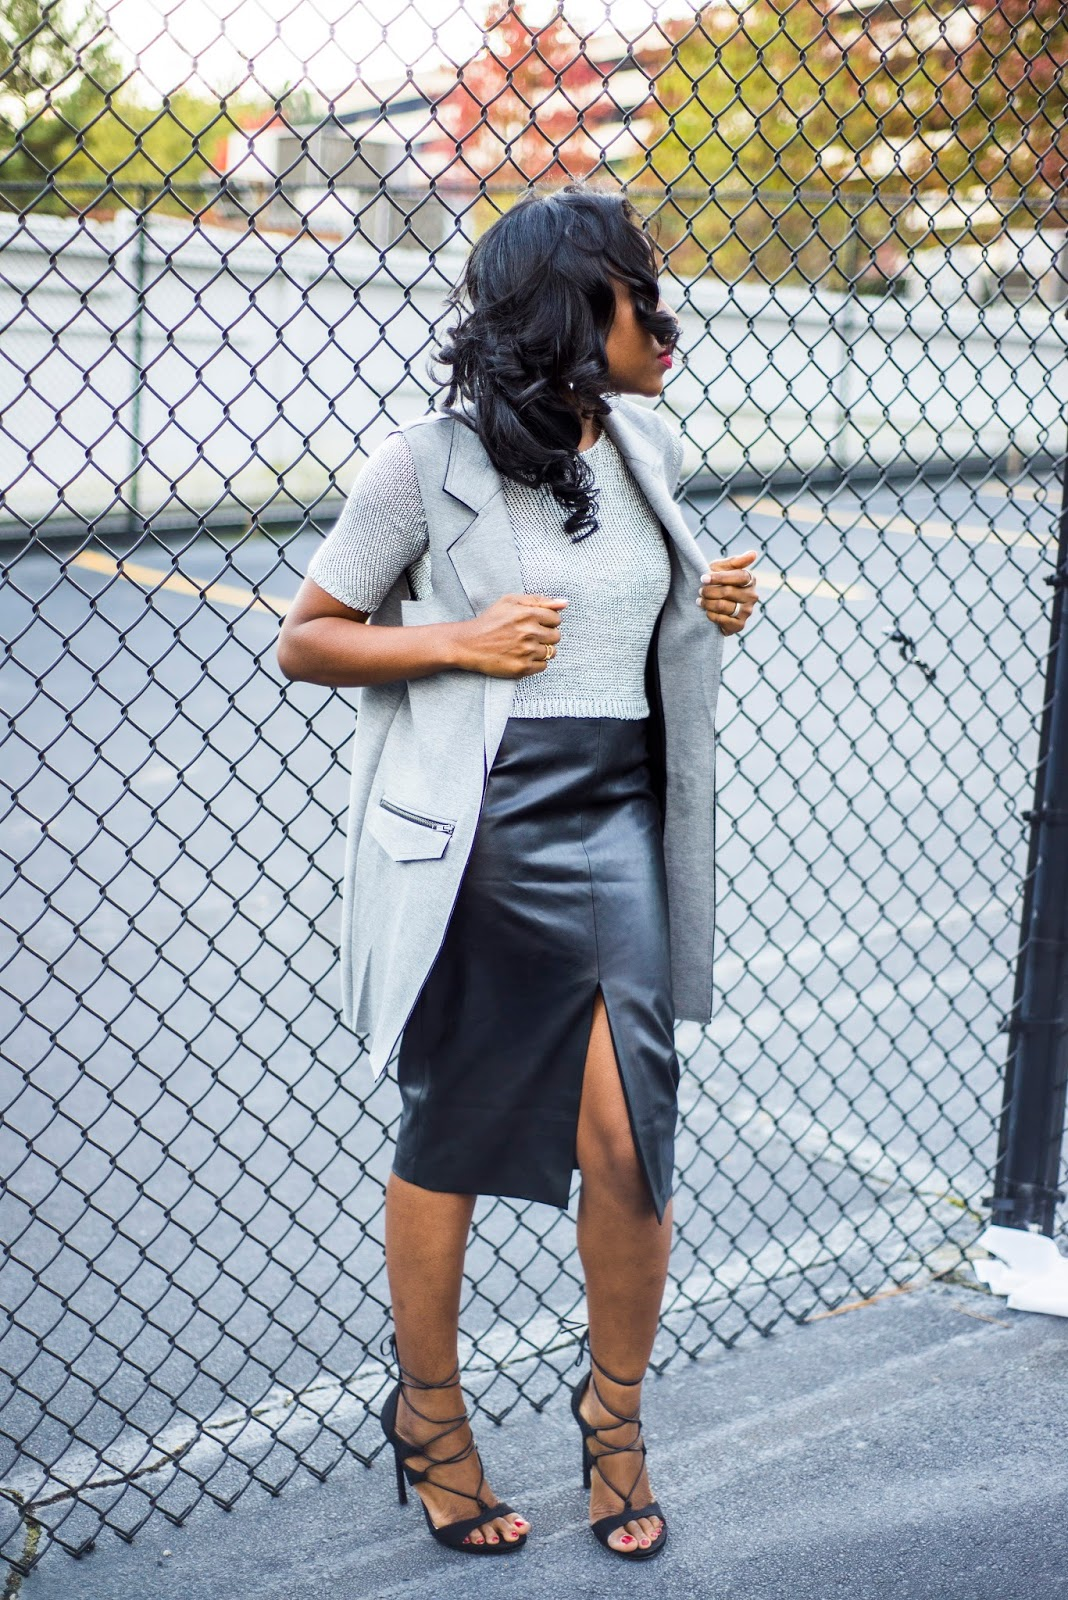 Fall fashion: Faux leather skirt